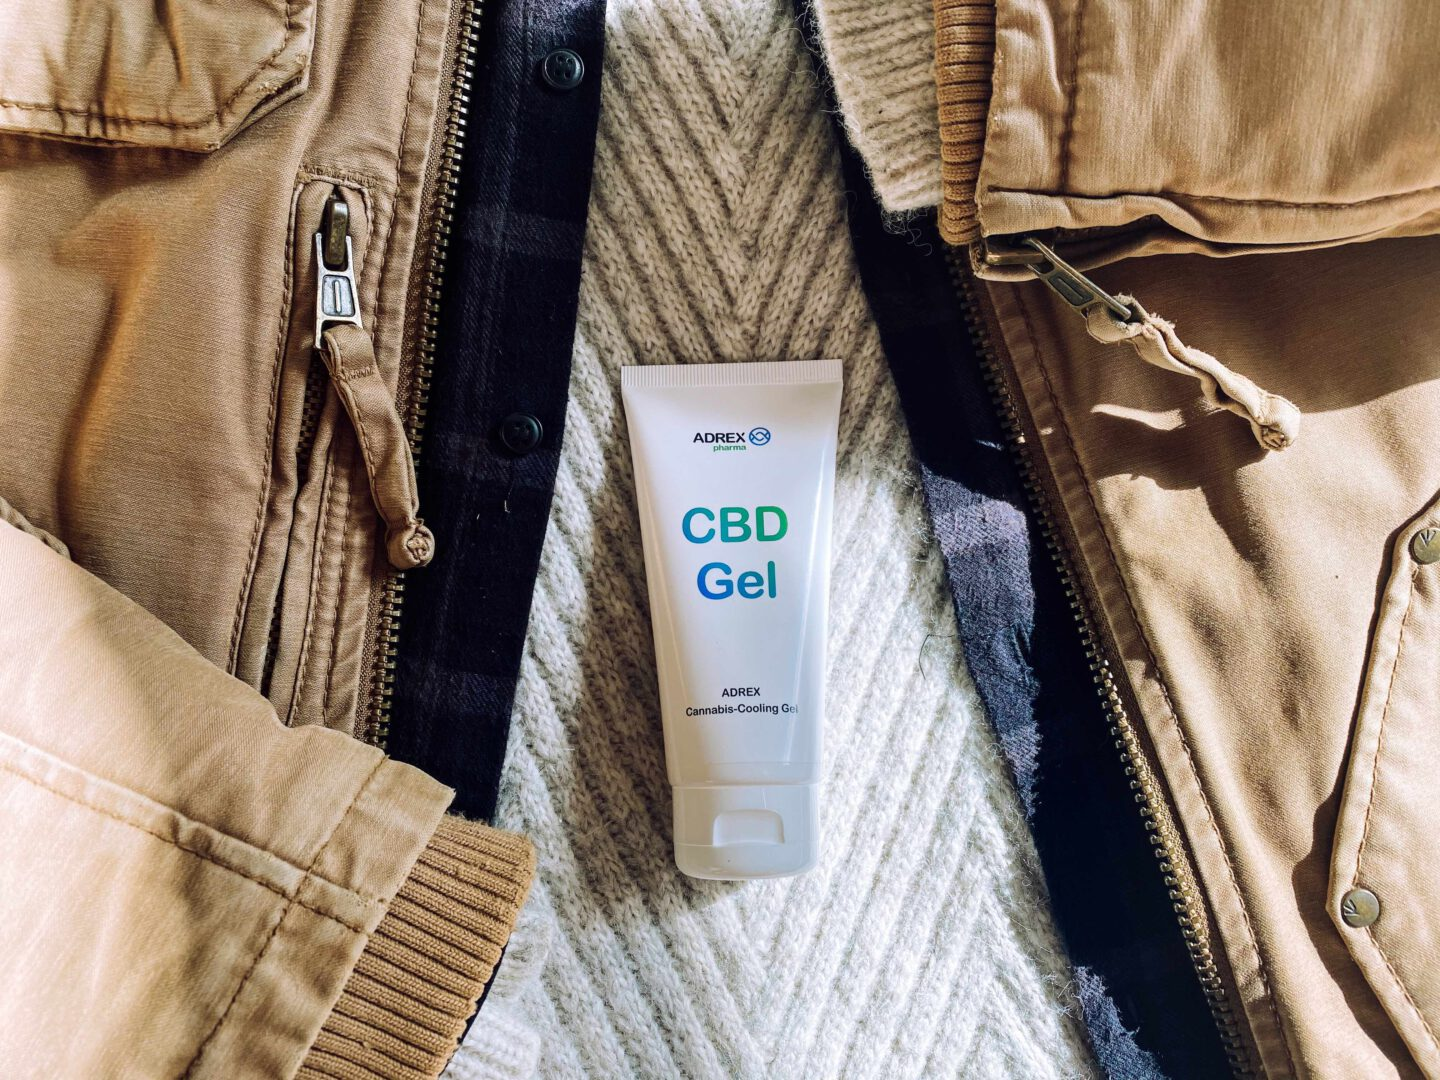 adrex pharma cbd gel gentlemens journey